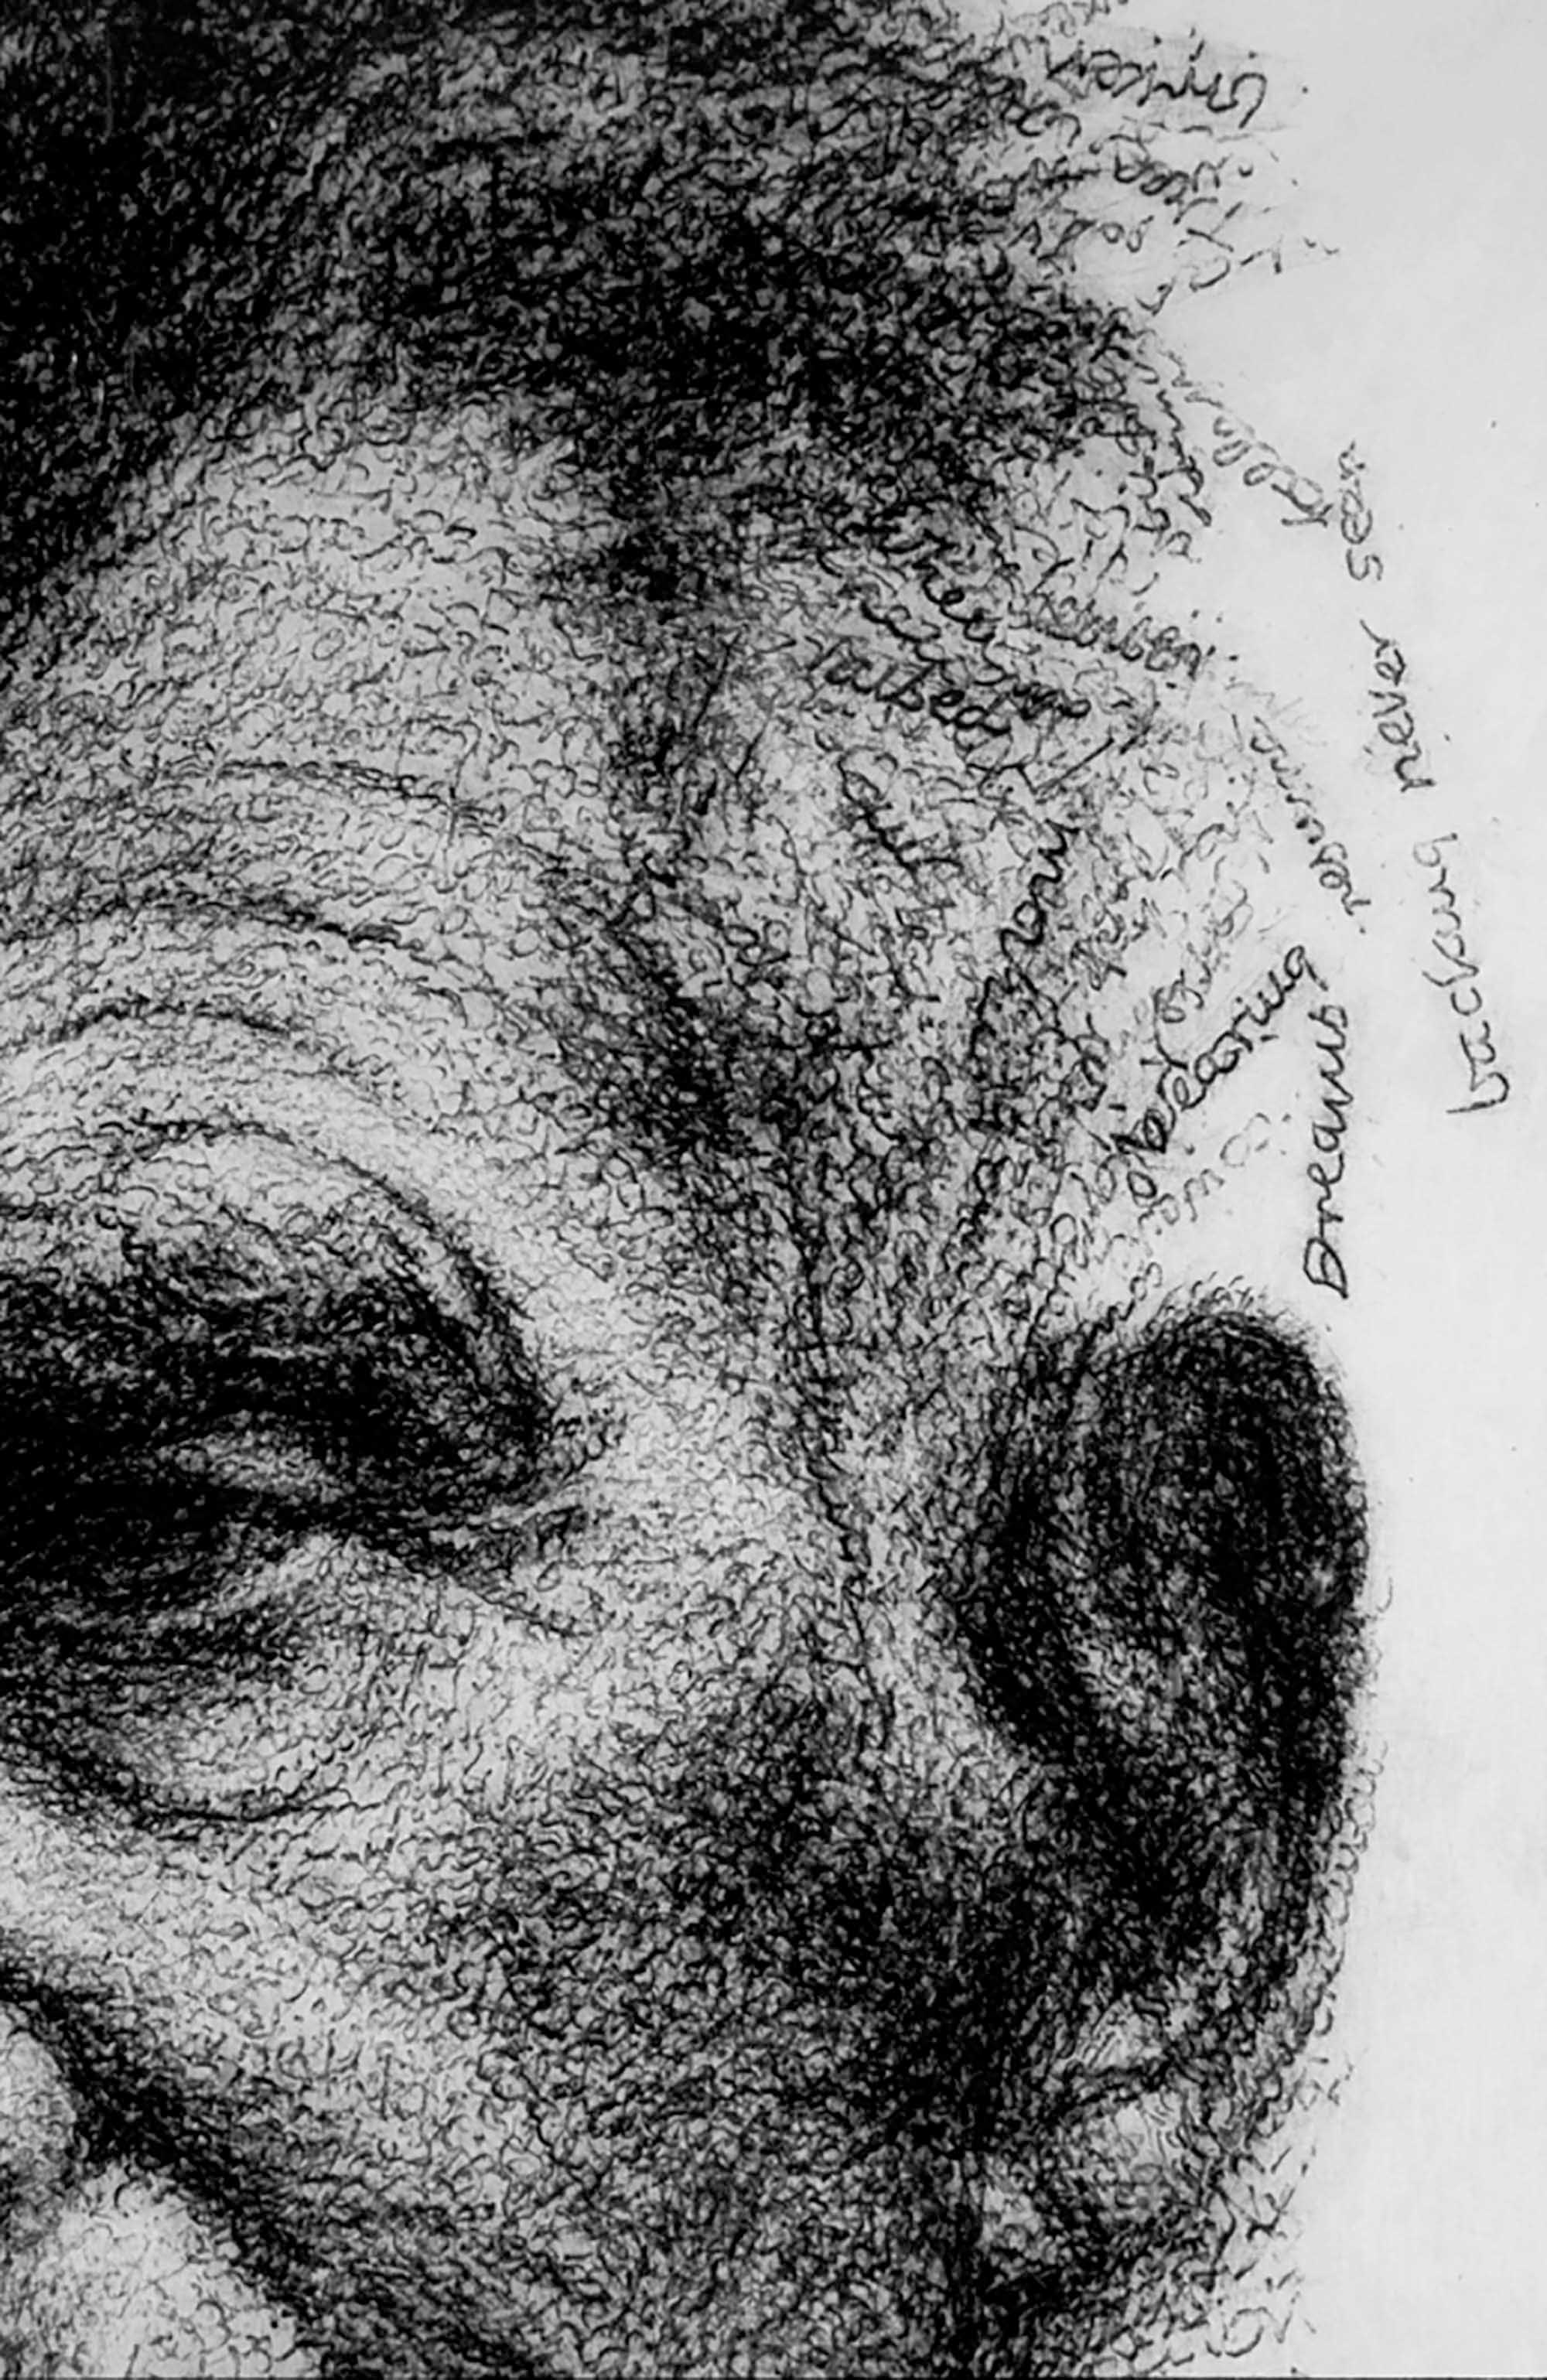 BECKETT IN HIS OWN WORDS     (detail)   2000 H45, W35 cm Japanese paper, graphite Private collection